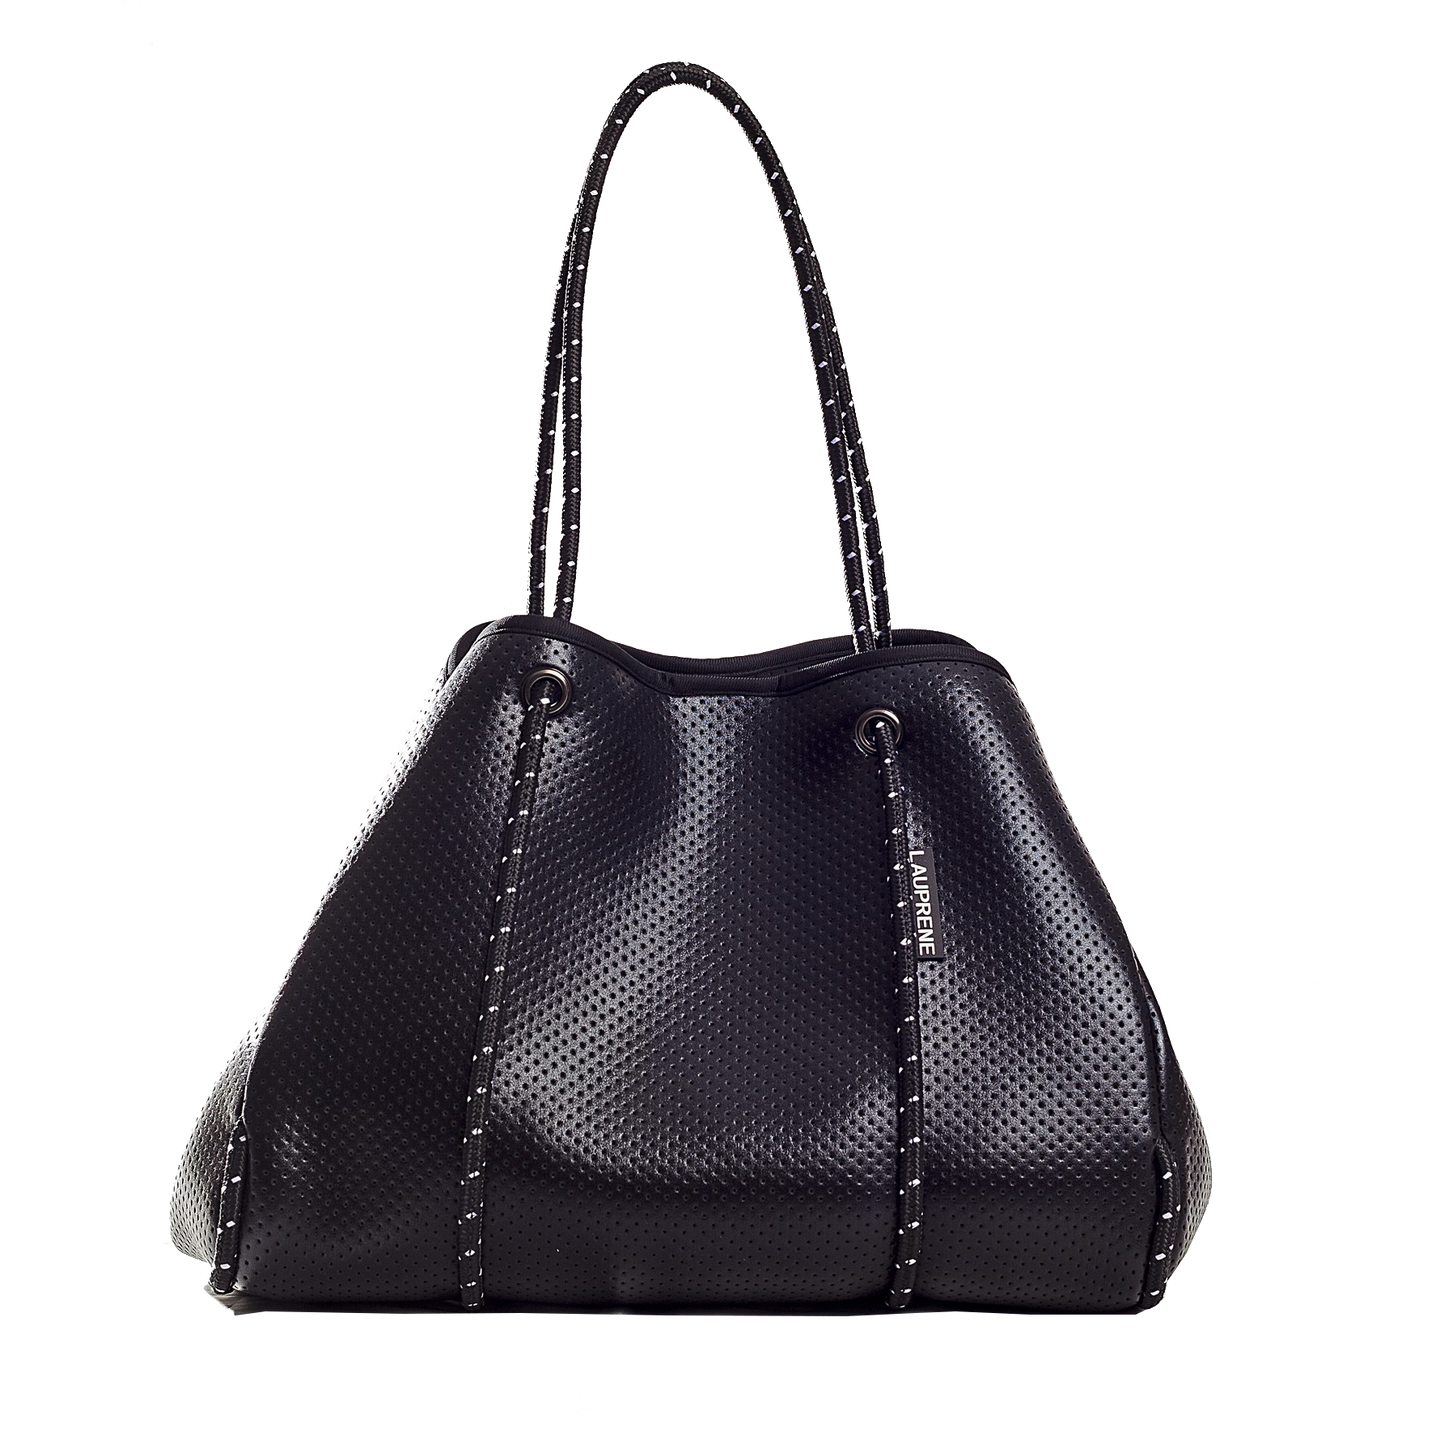 NEOPRENE TOTE BAG - METALLIC BLACK